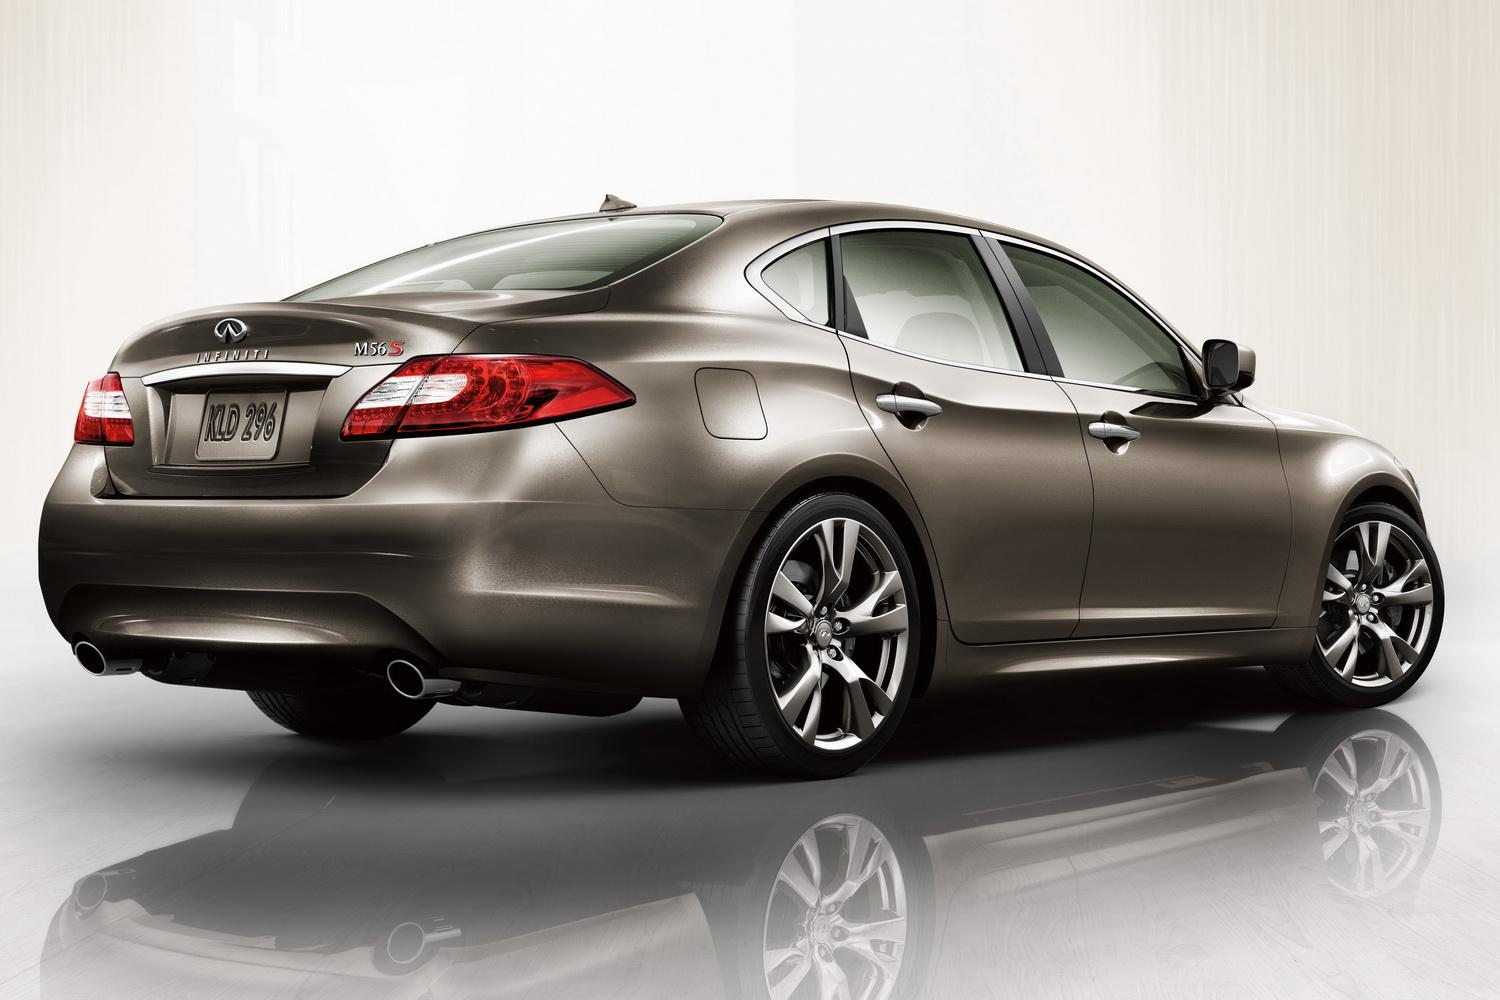 Les news de l'automobile - Page 2 Infiniti-m37-and-m56_3